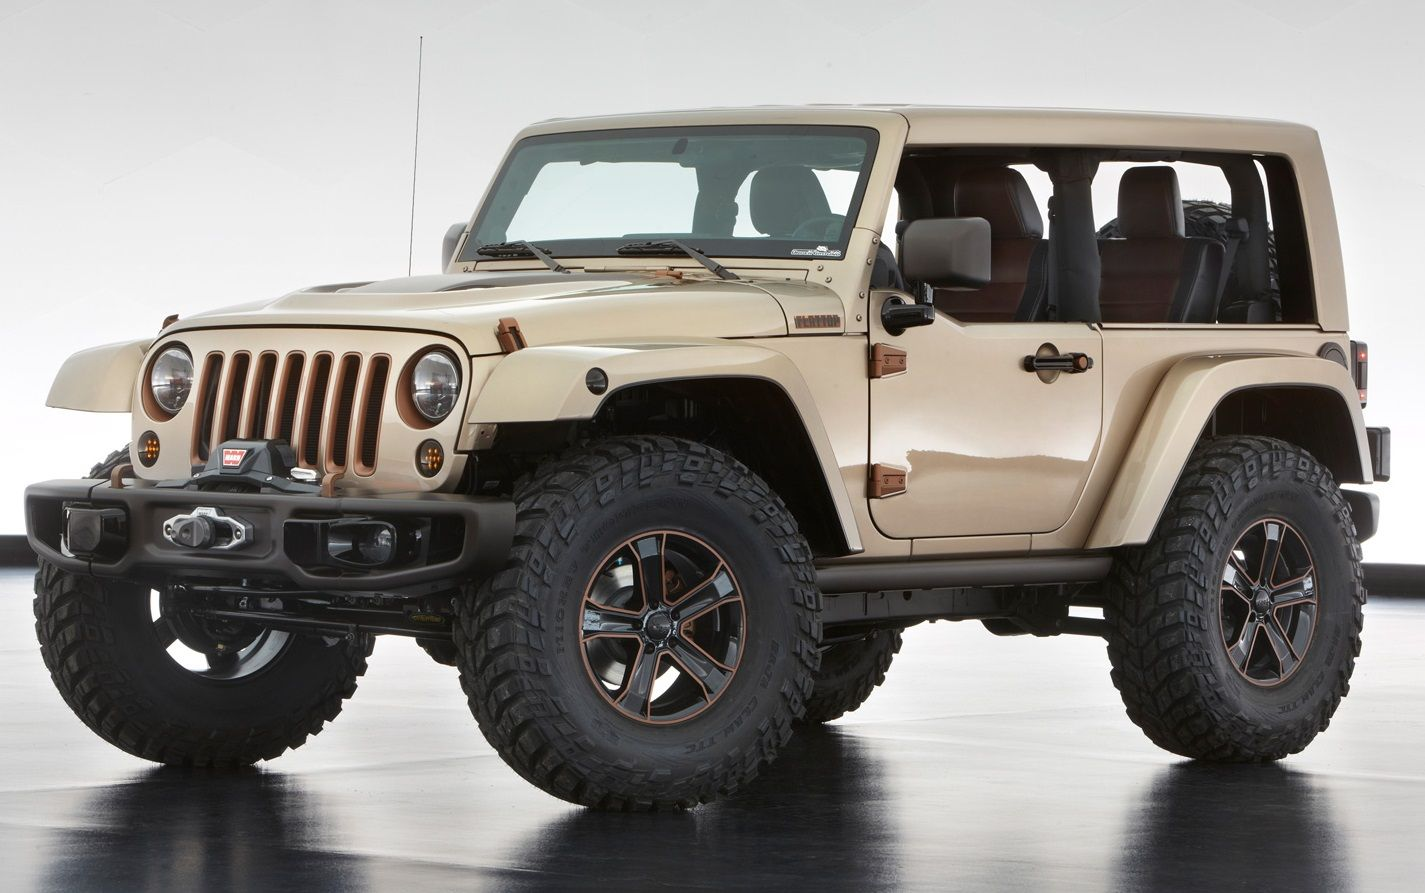 2017 Jeep Patriot Redesign, Review, Release Date http